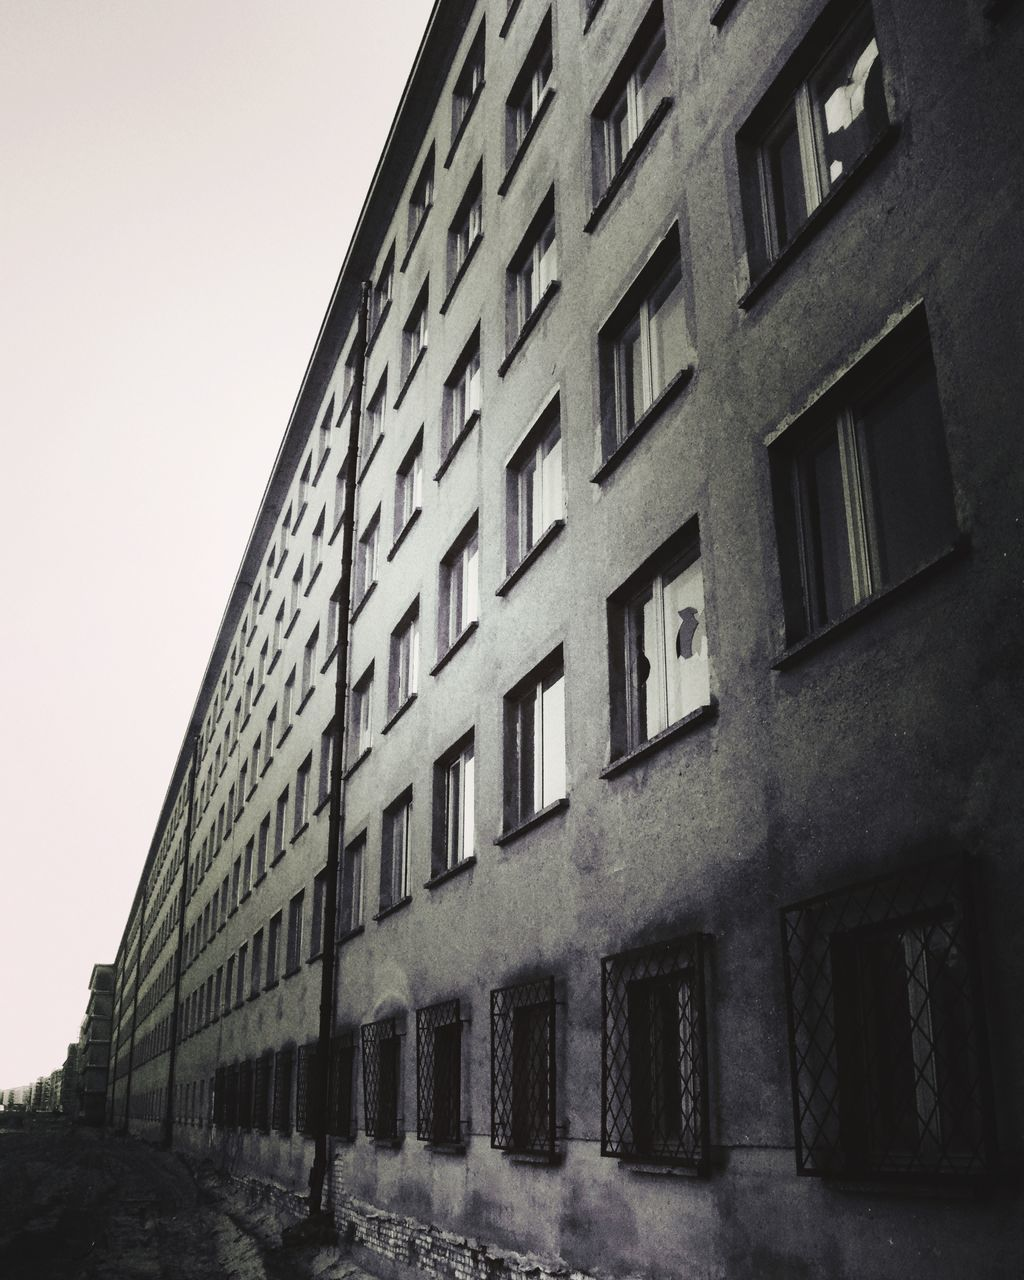 architecture, building exterior, window, built structure, no people, low angle view, day, outdoors, city, sky